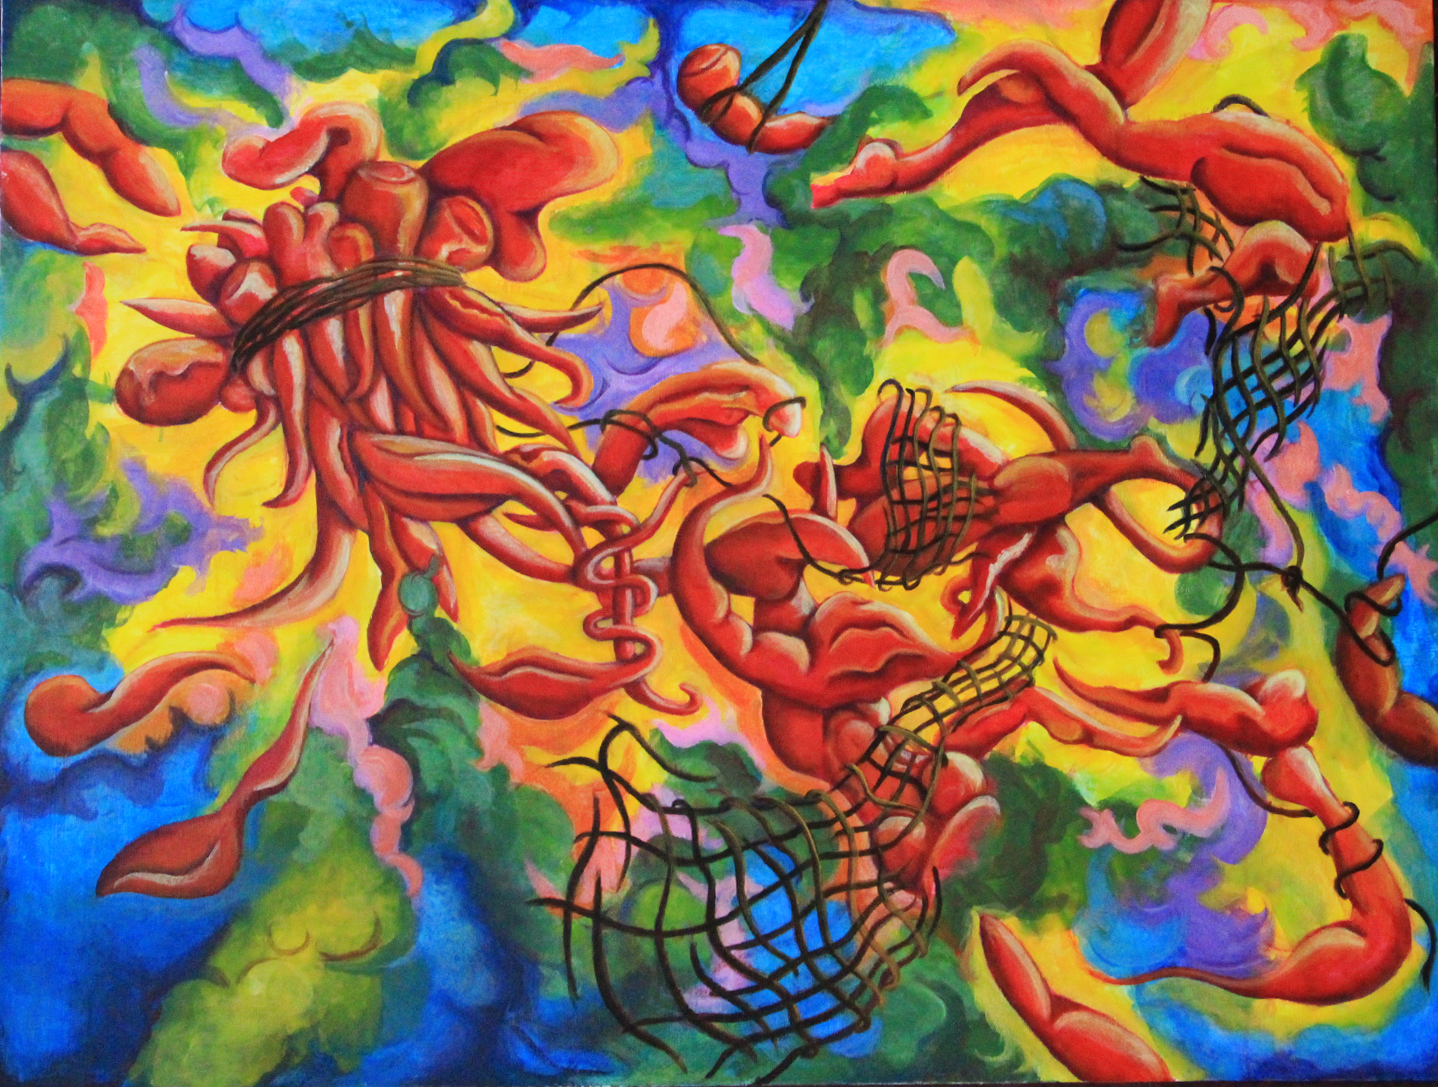 Flesh artwork by Yuexin Ma - art listed for sale on Artplode